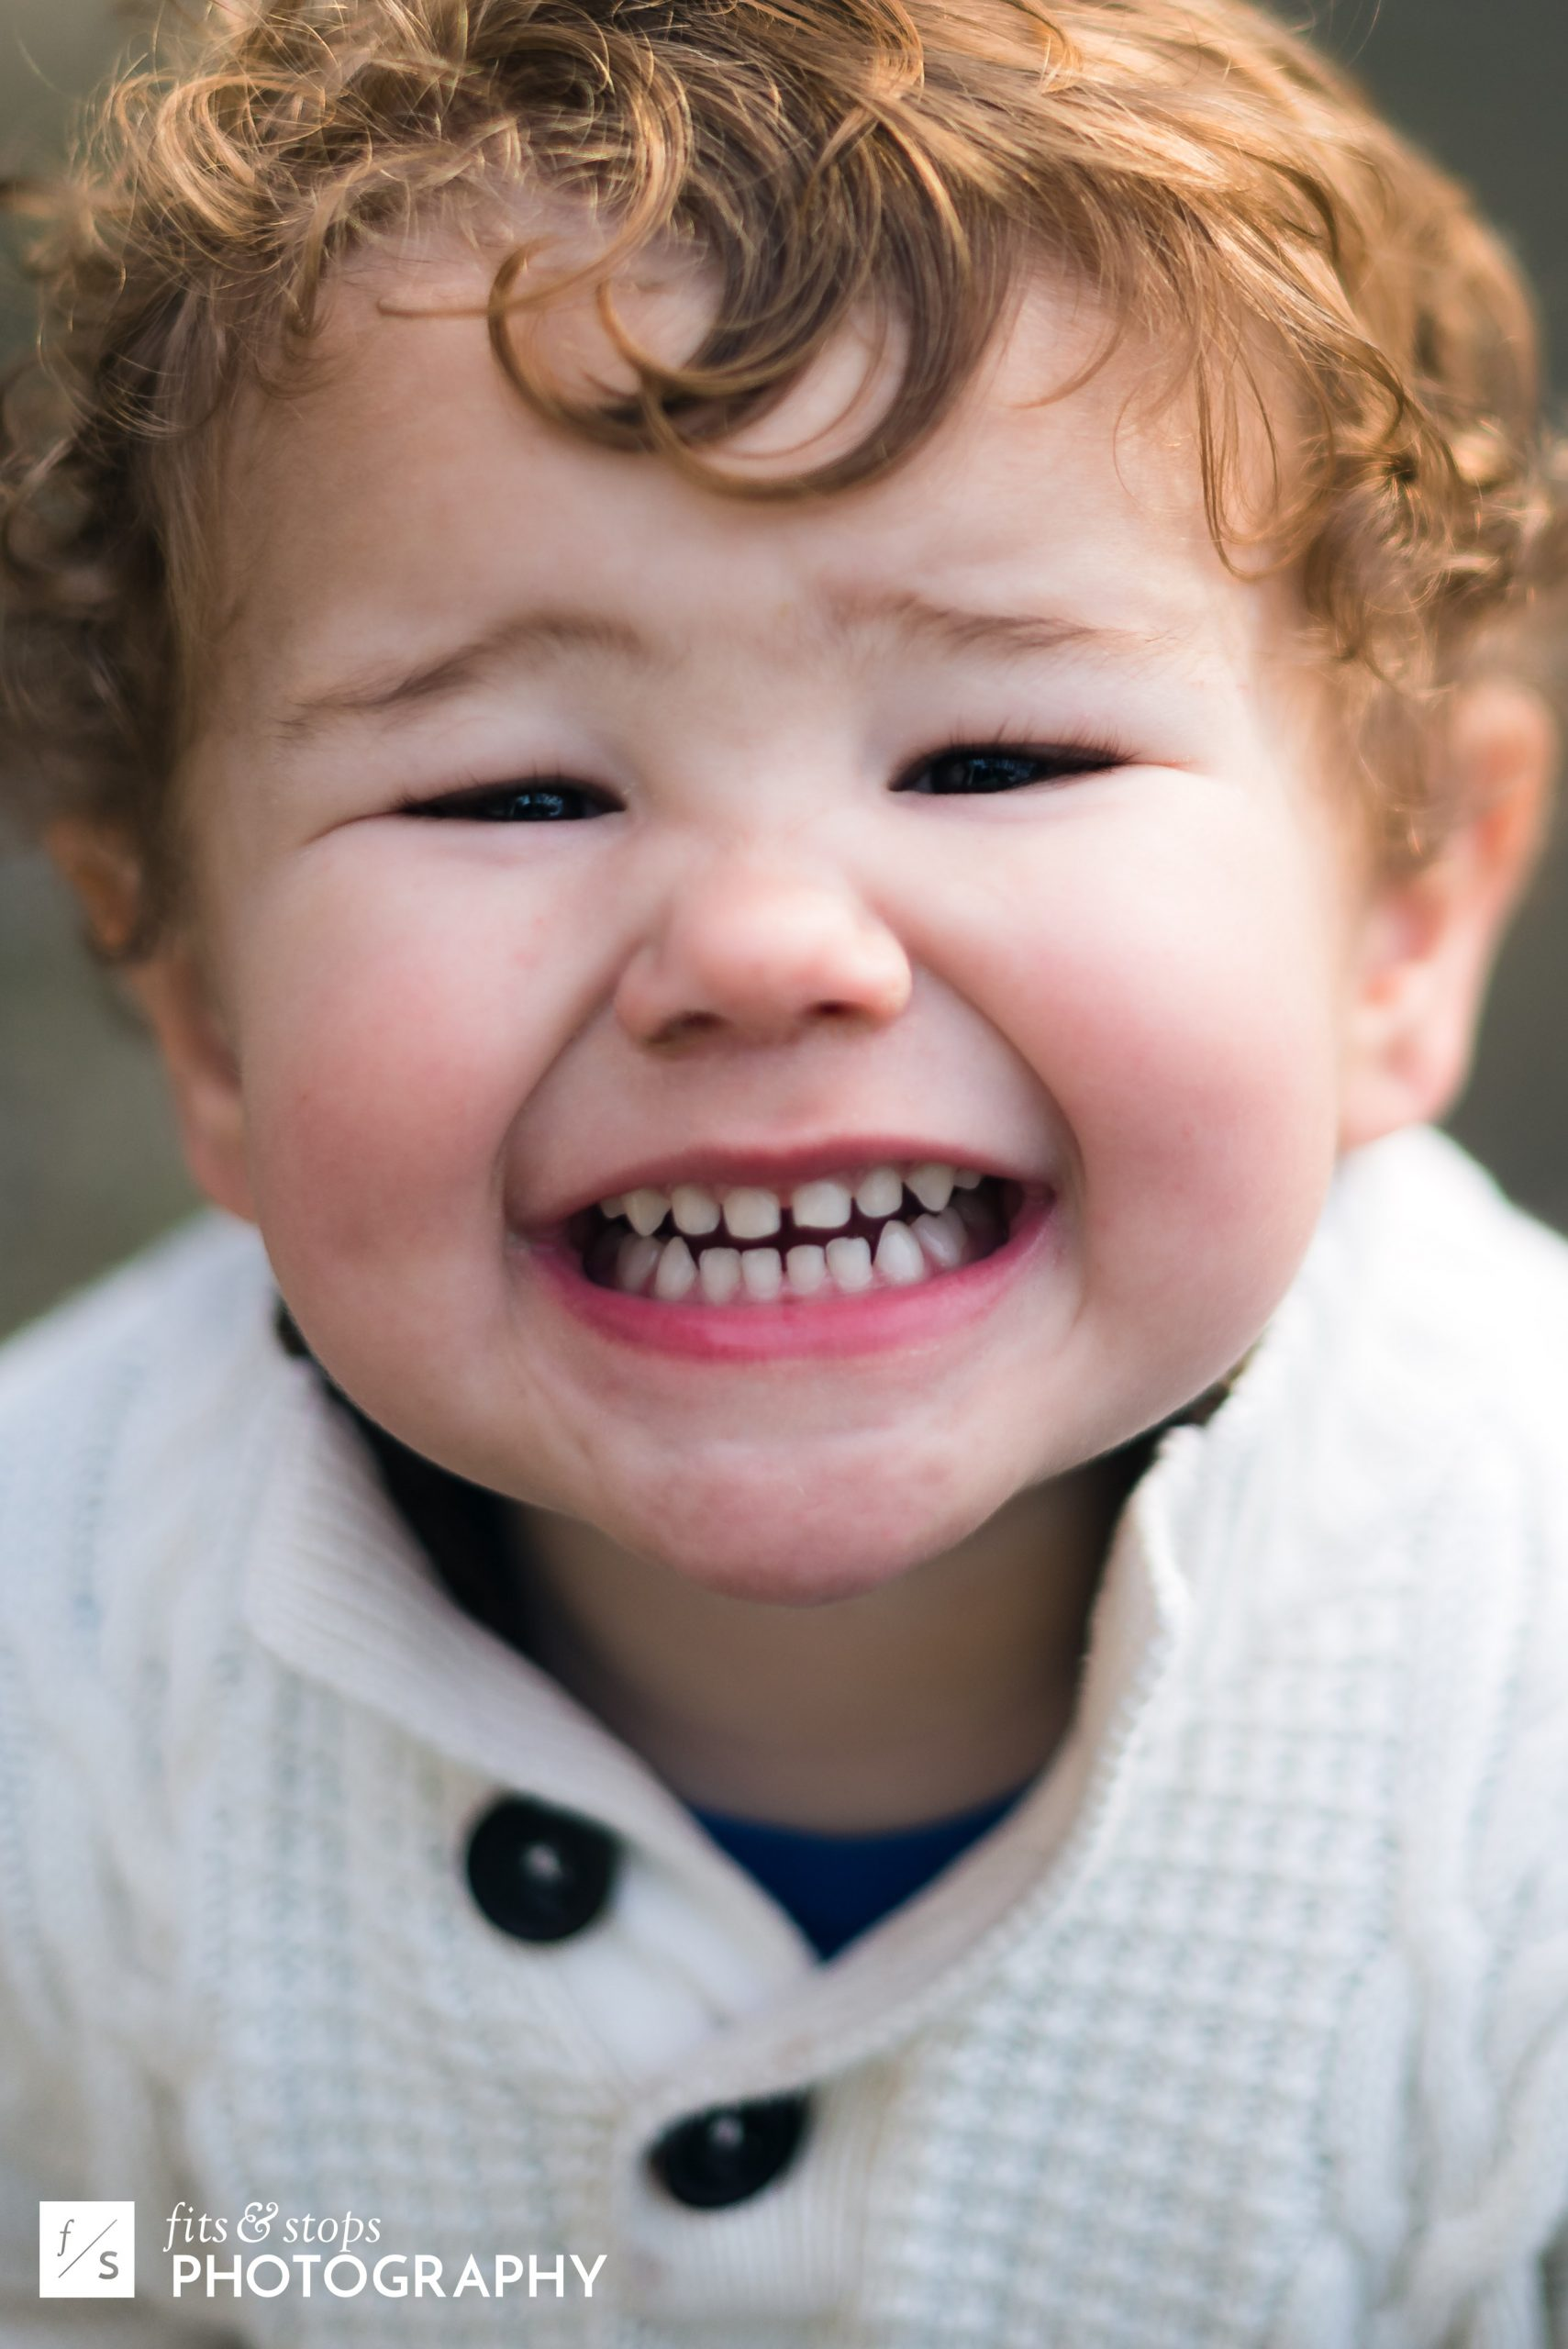 A close up portrait photograph of a young caucasian boy with a contagious smile, with very shallow depth of field.